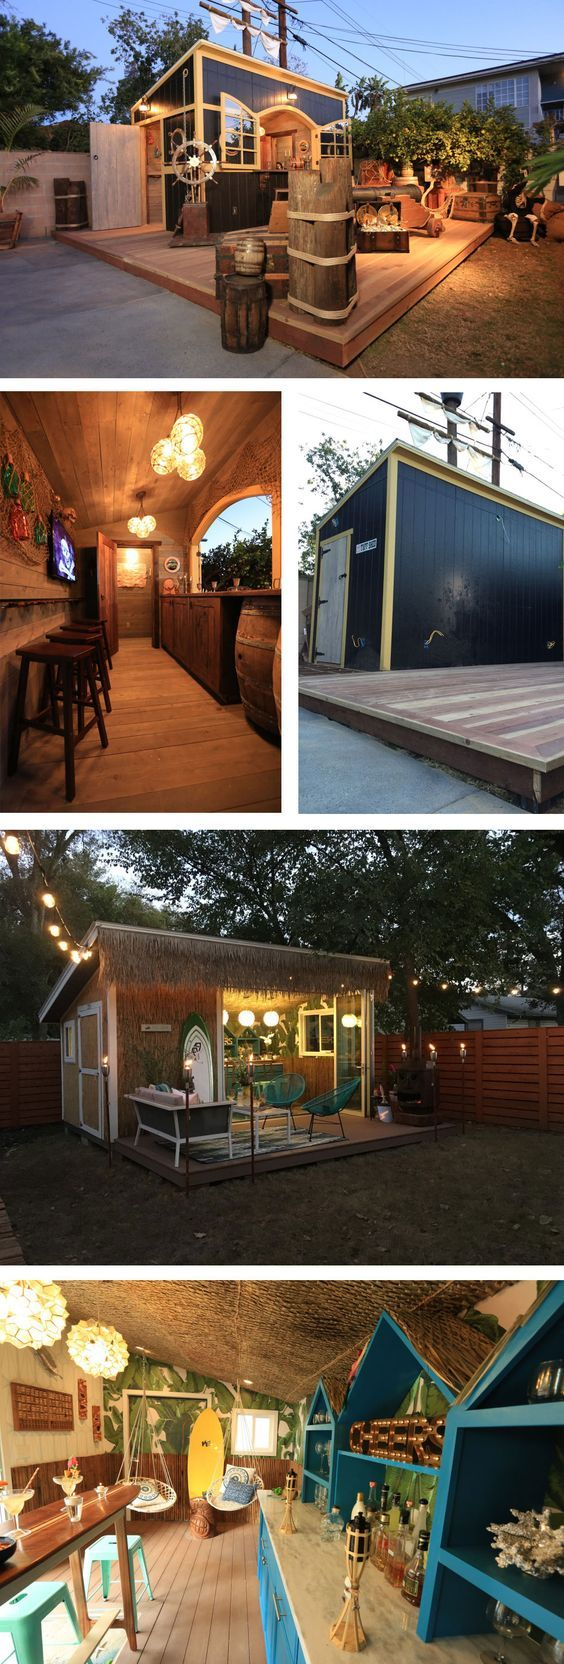 shed lighting ideas. Shed Lighting Ideas. Pub And Party Sheds Are Taking Over Backyards Across The Country. Ideas A